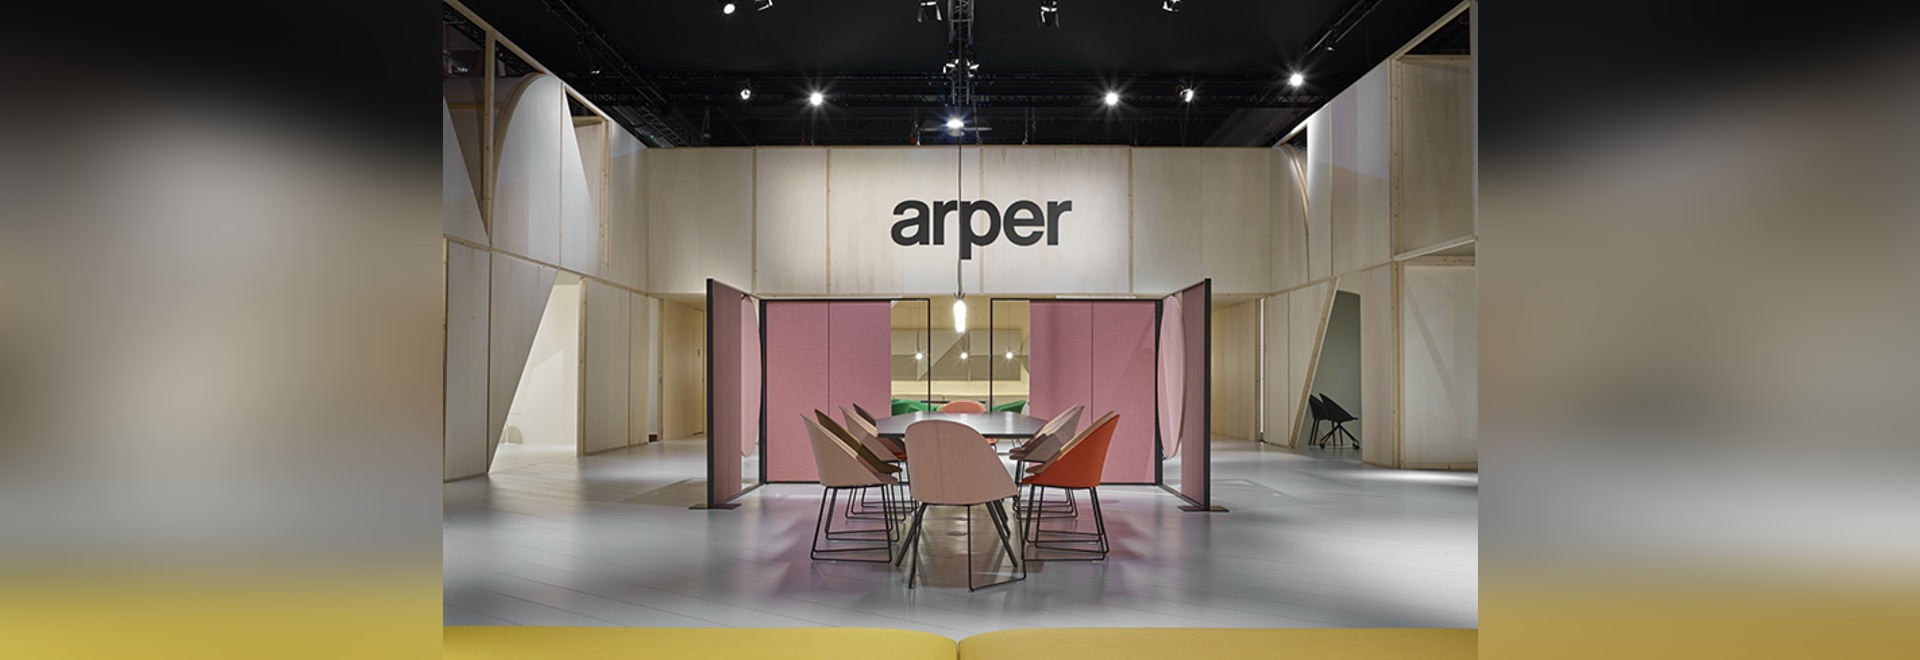 Arper at the Salone del Mobile 2018